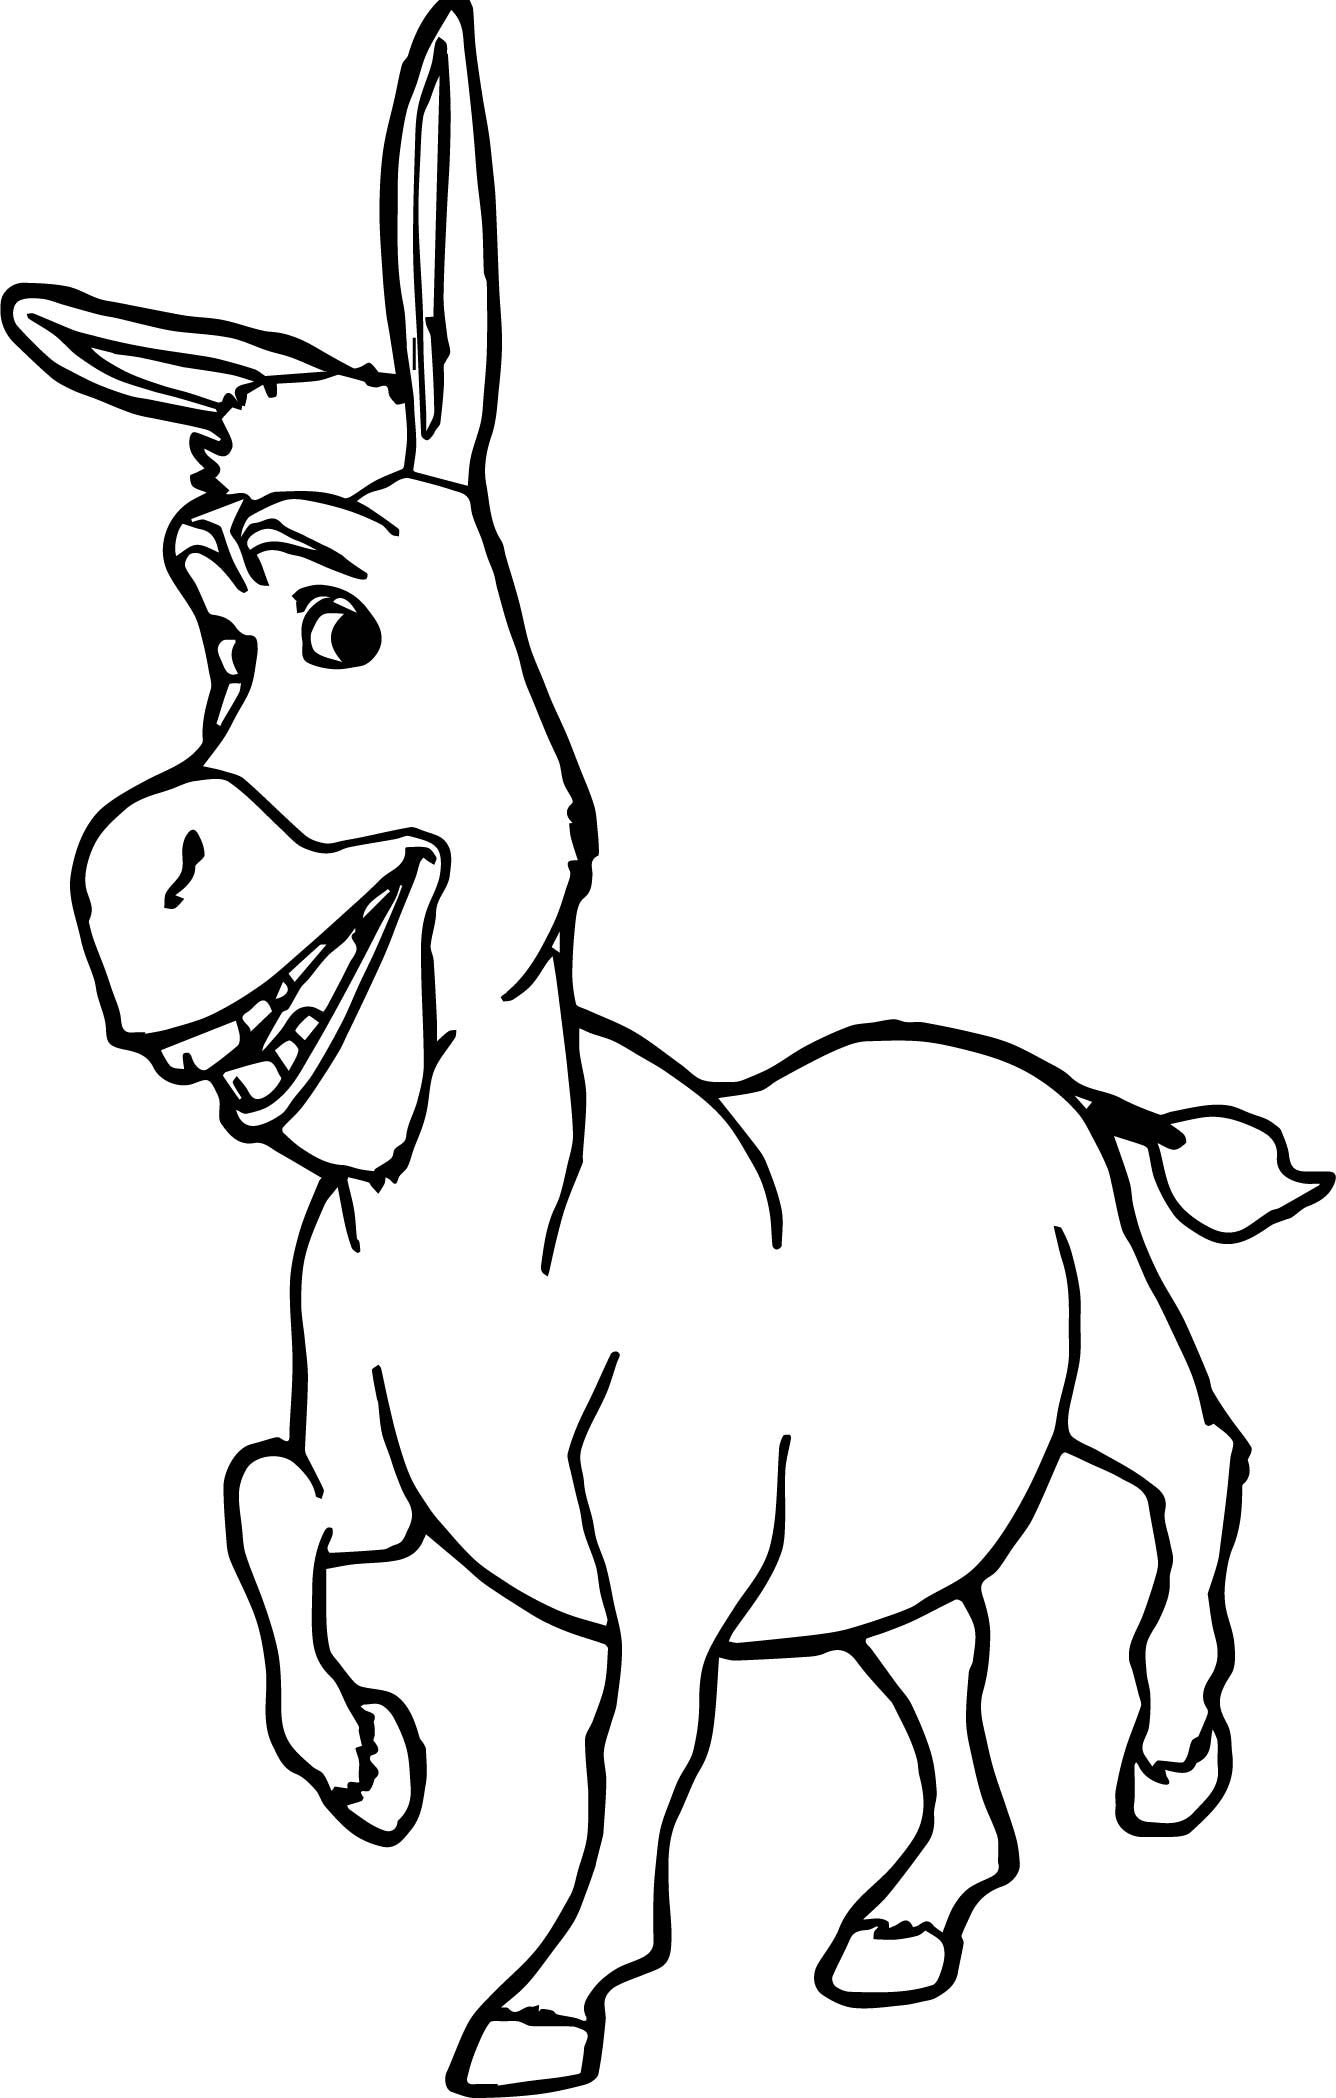 Nice Donkey Shrek Coloring Page Coloring Pages Shrek Cartoon